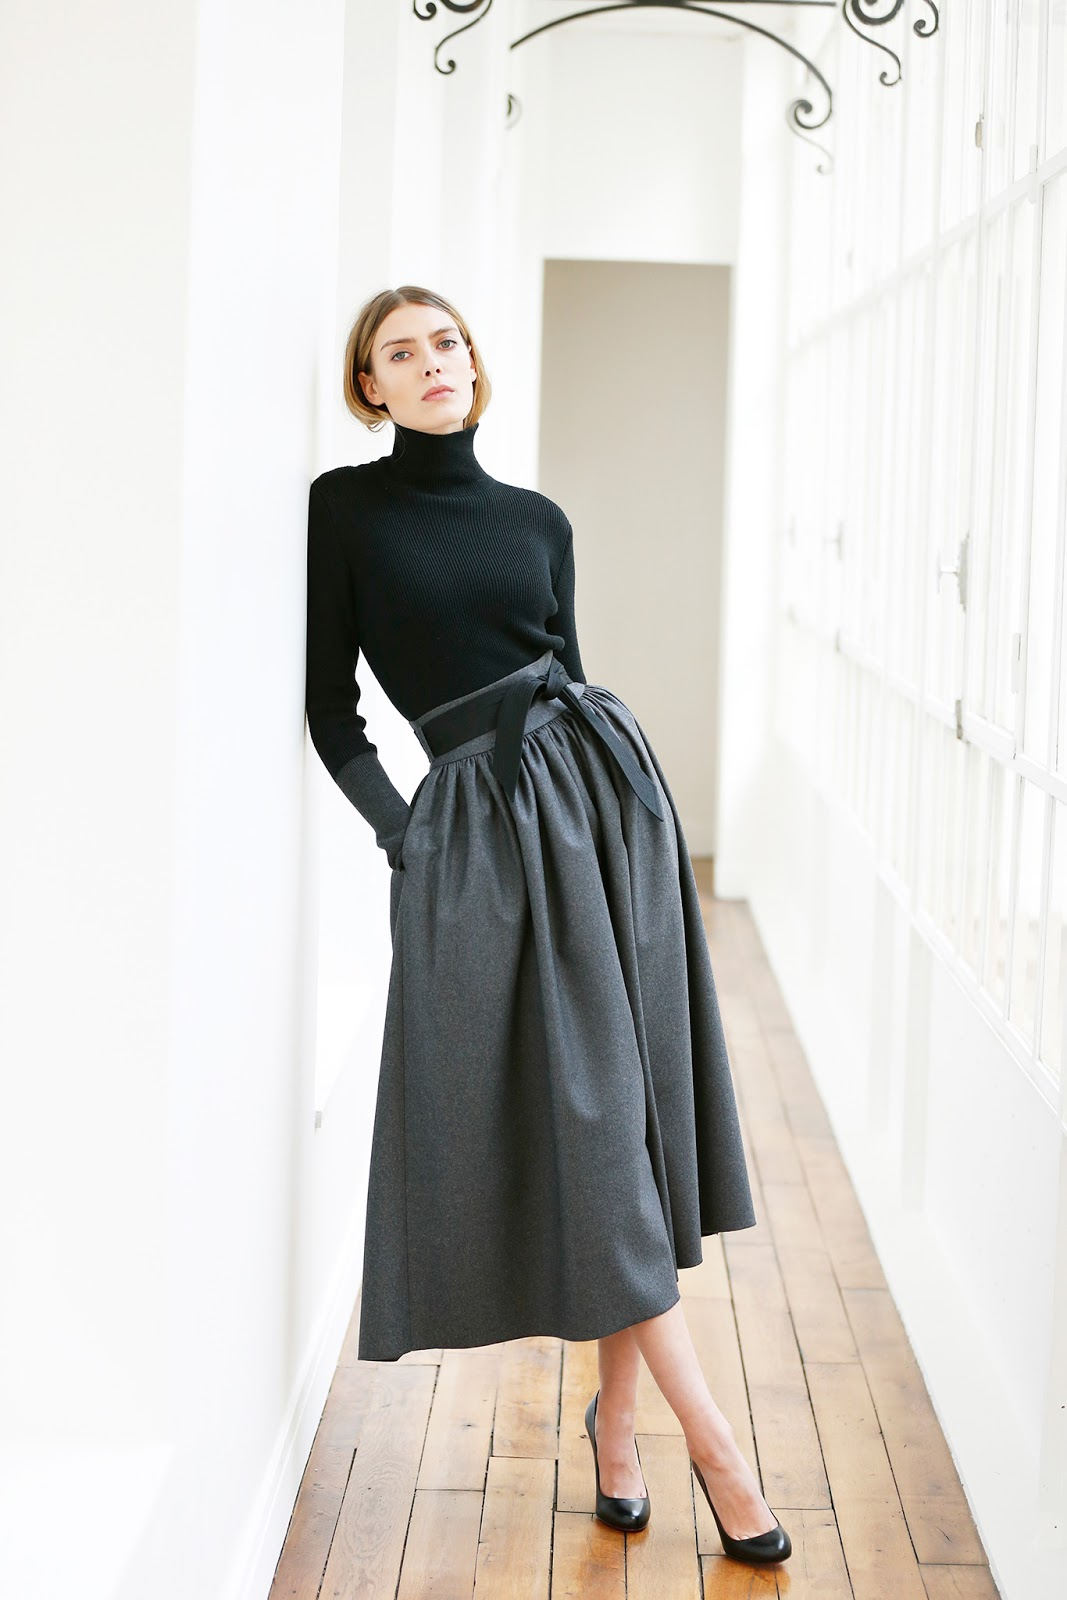 transitional style inspiration from the catwalk / how to wear midi skirt in autumn / Martin Grand / via fashionedbylove.co.uk / british fashion & style blog